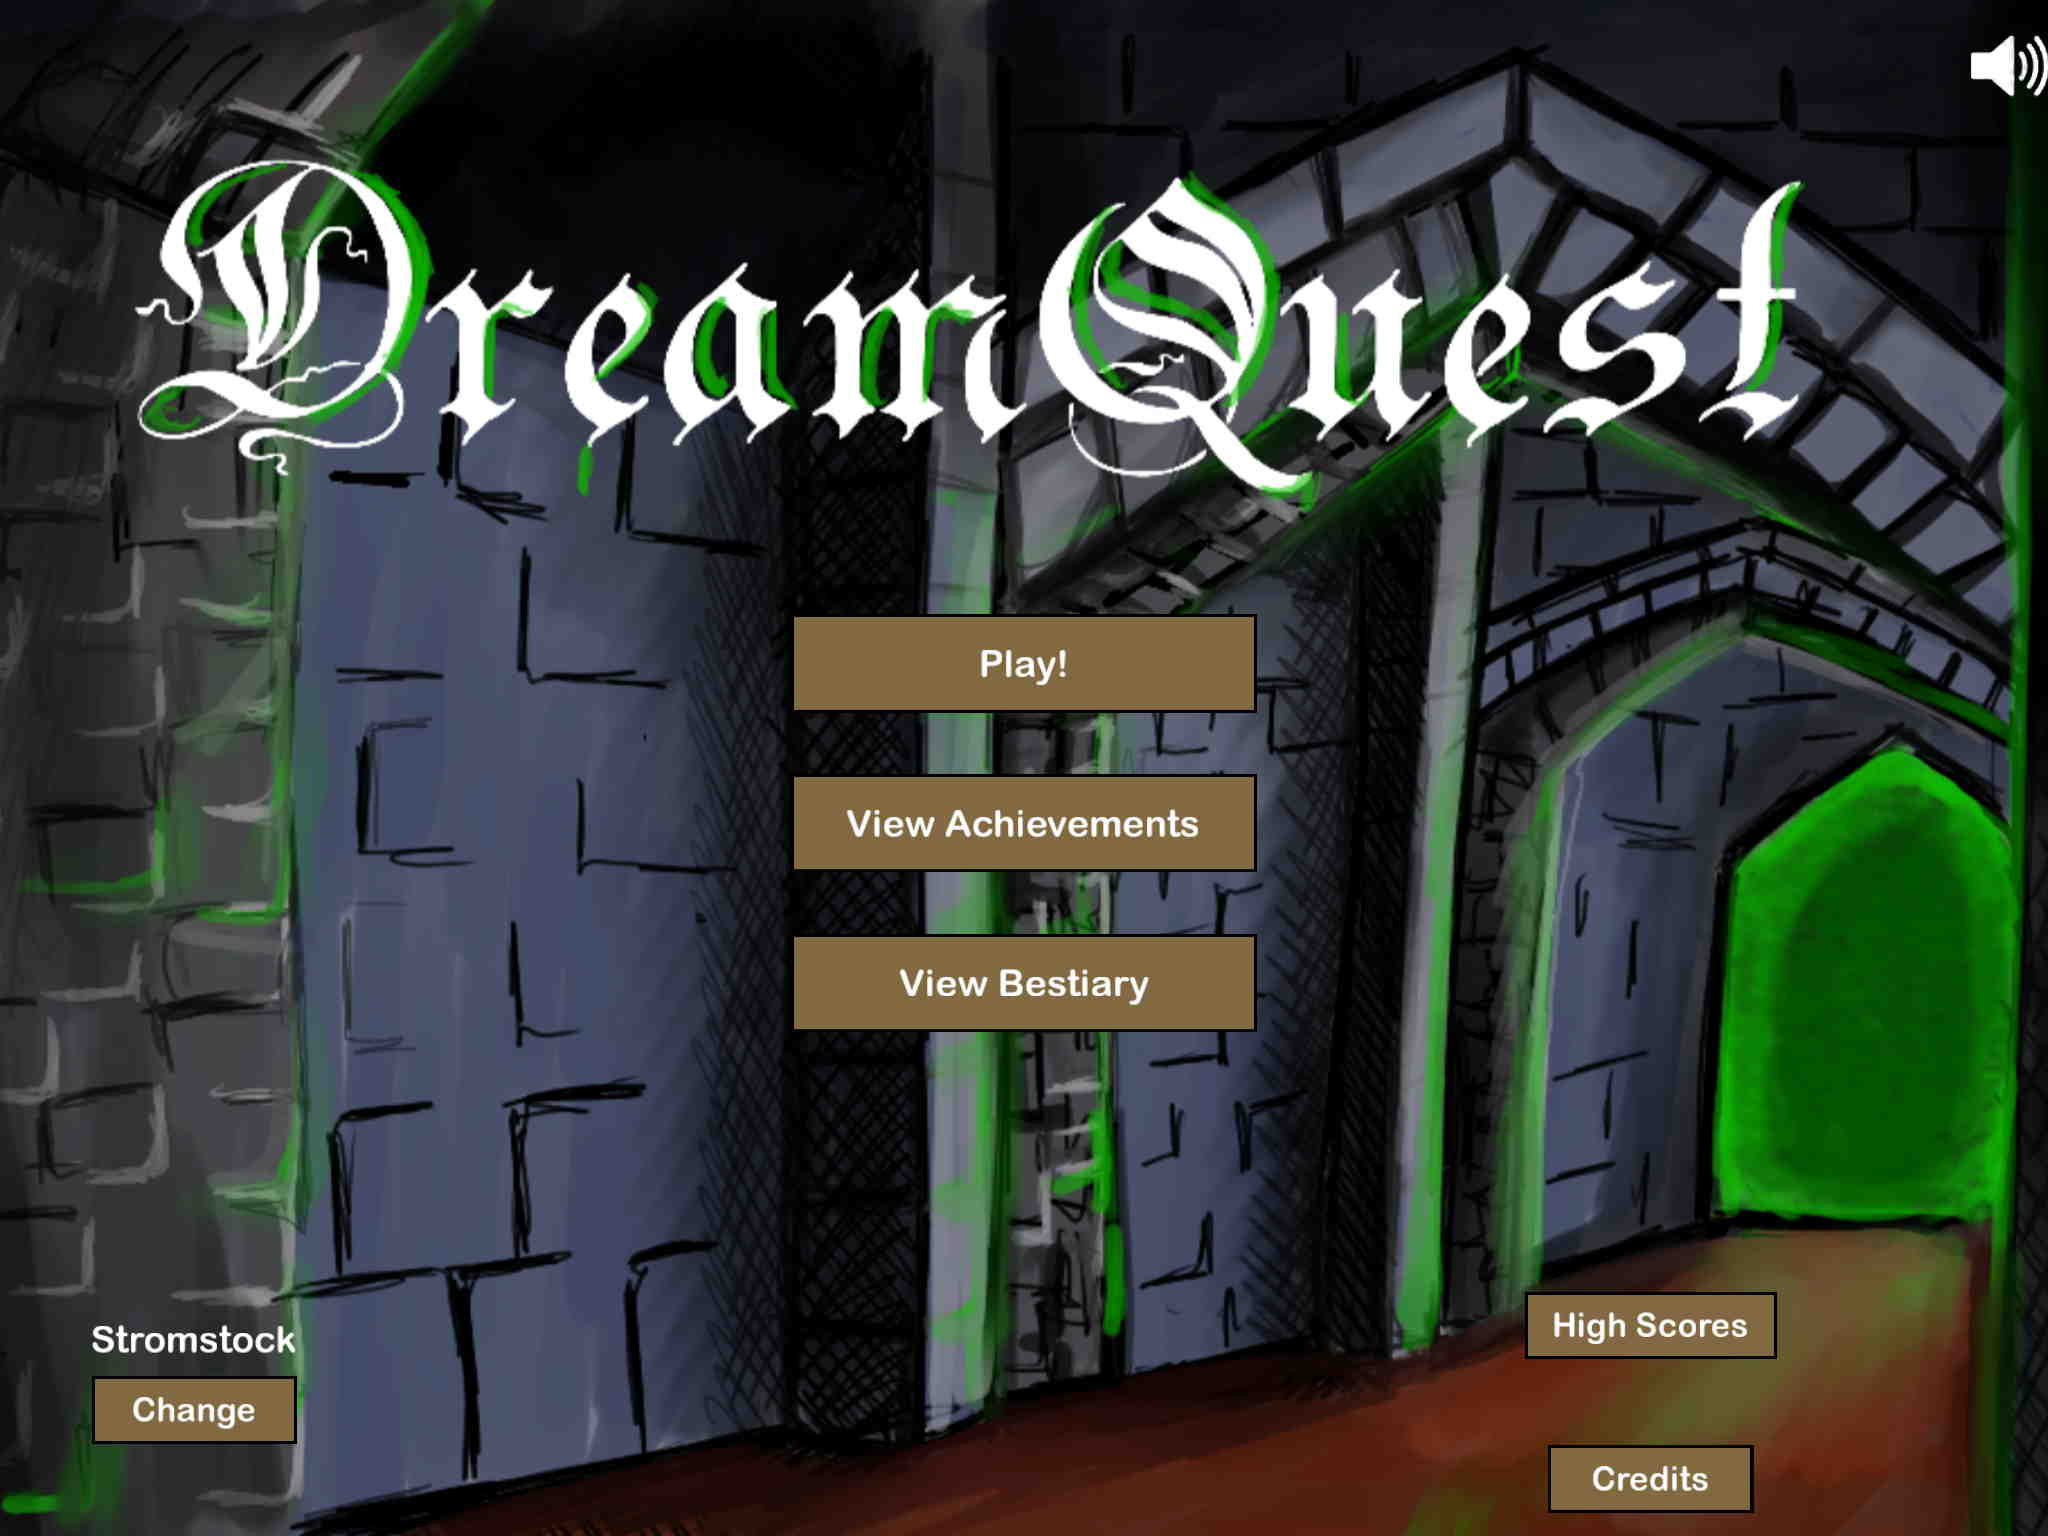 DreamQuest01